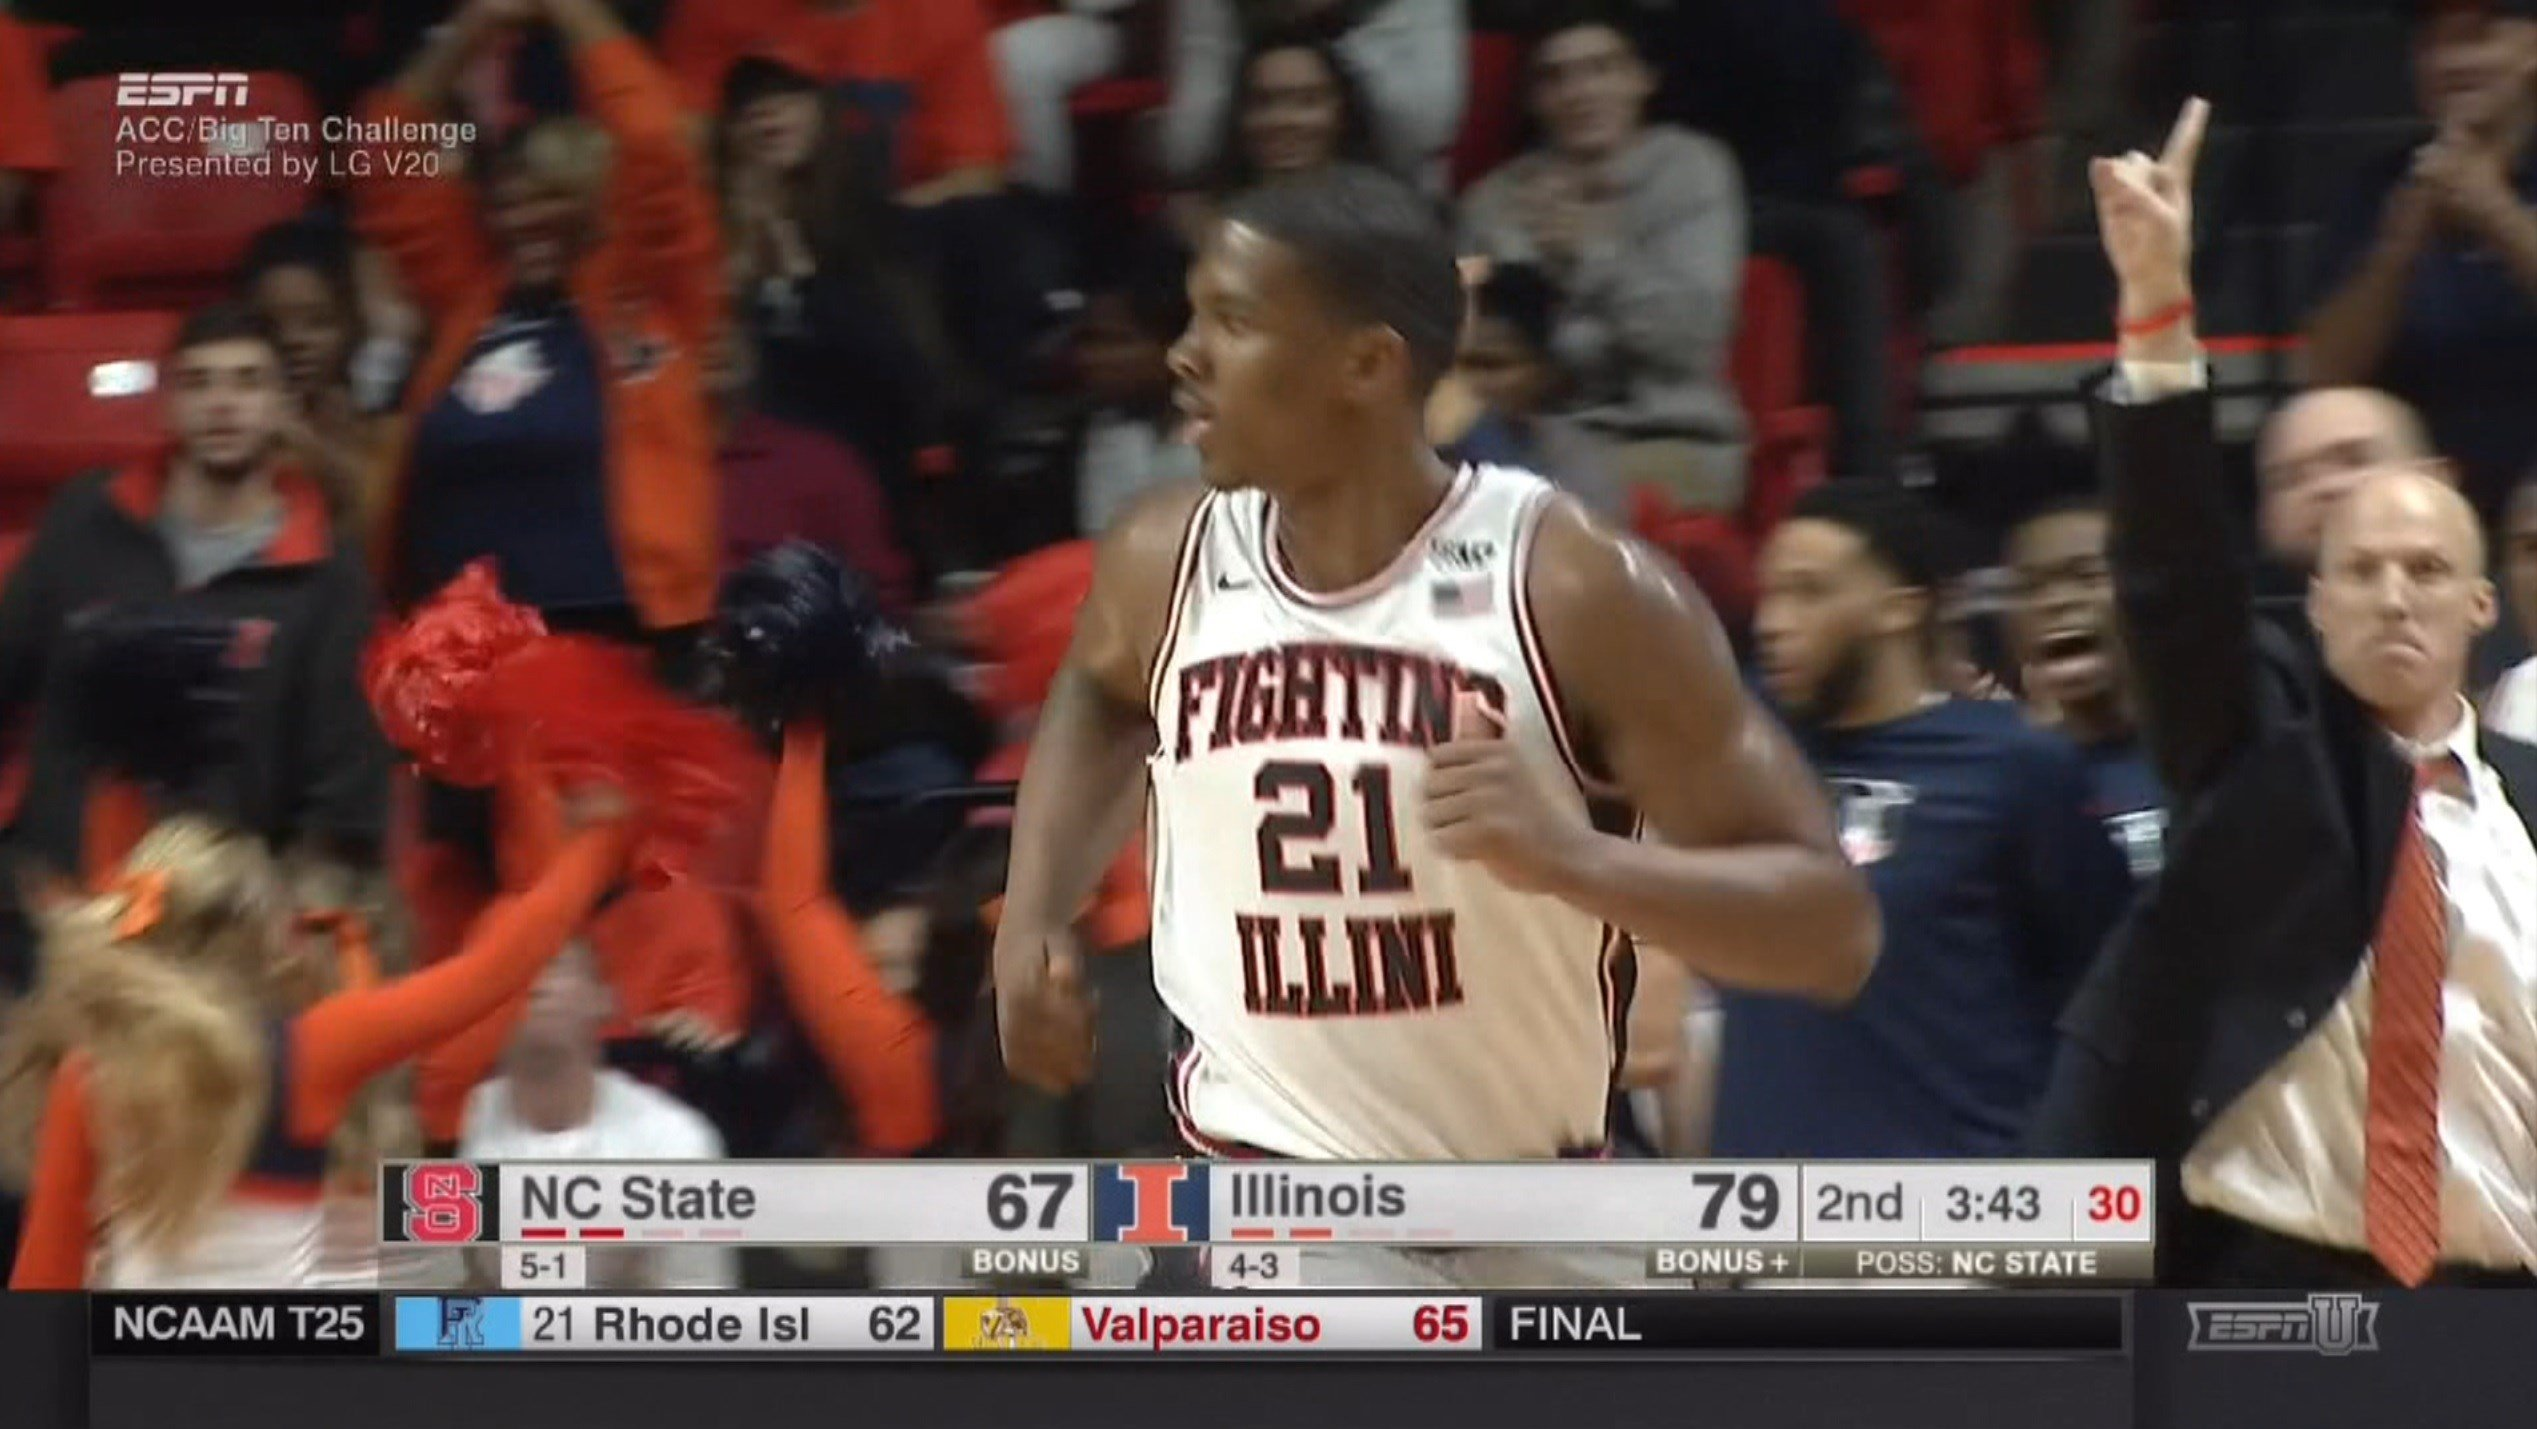 Illini senior Macolm Hill posted 22 points and Illinois picked up its first quality win of 2016-17 against North Carolina State.